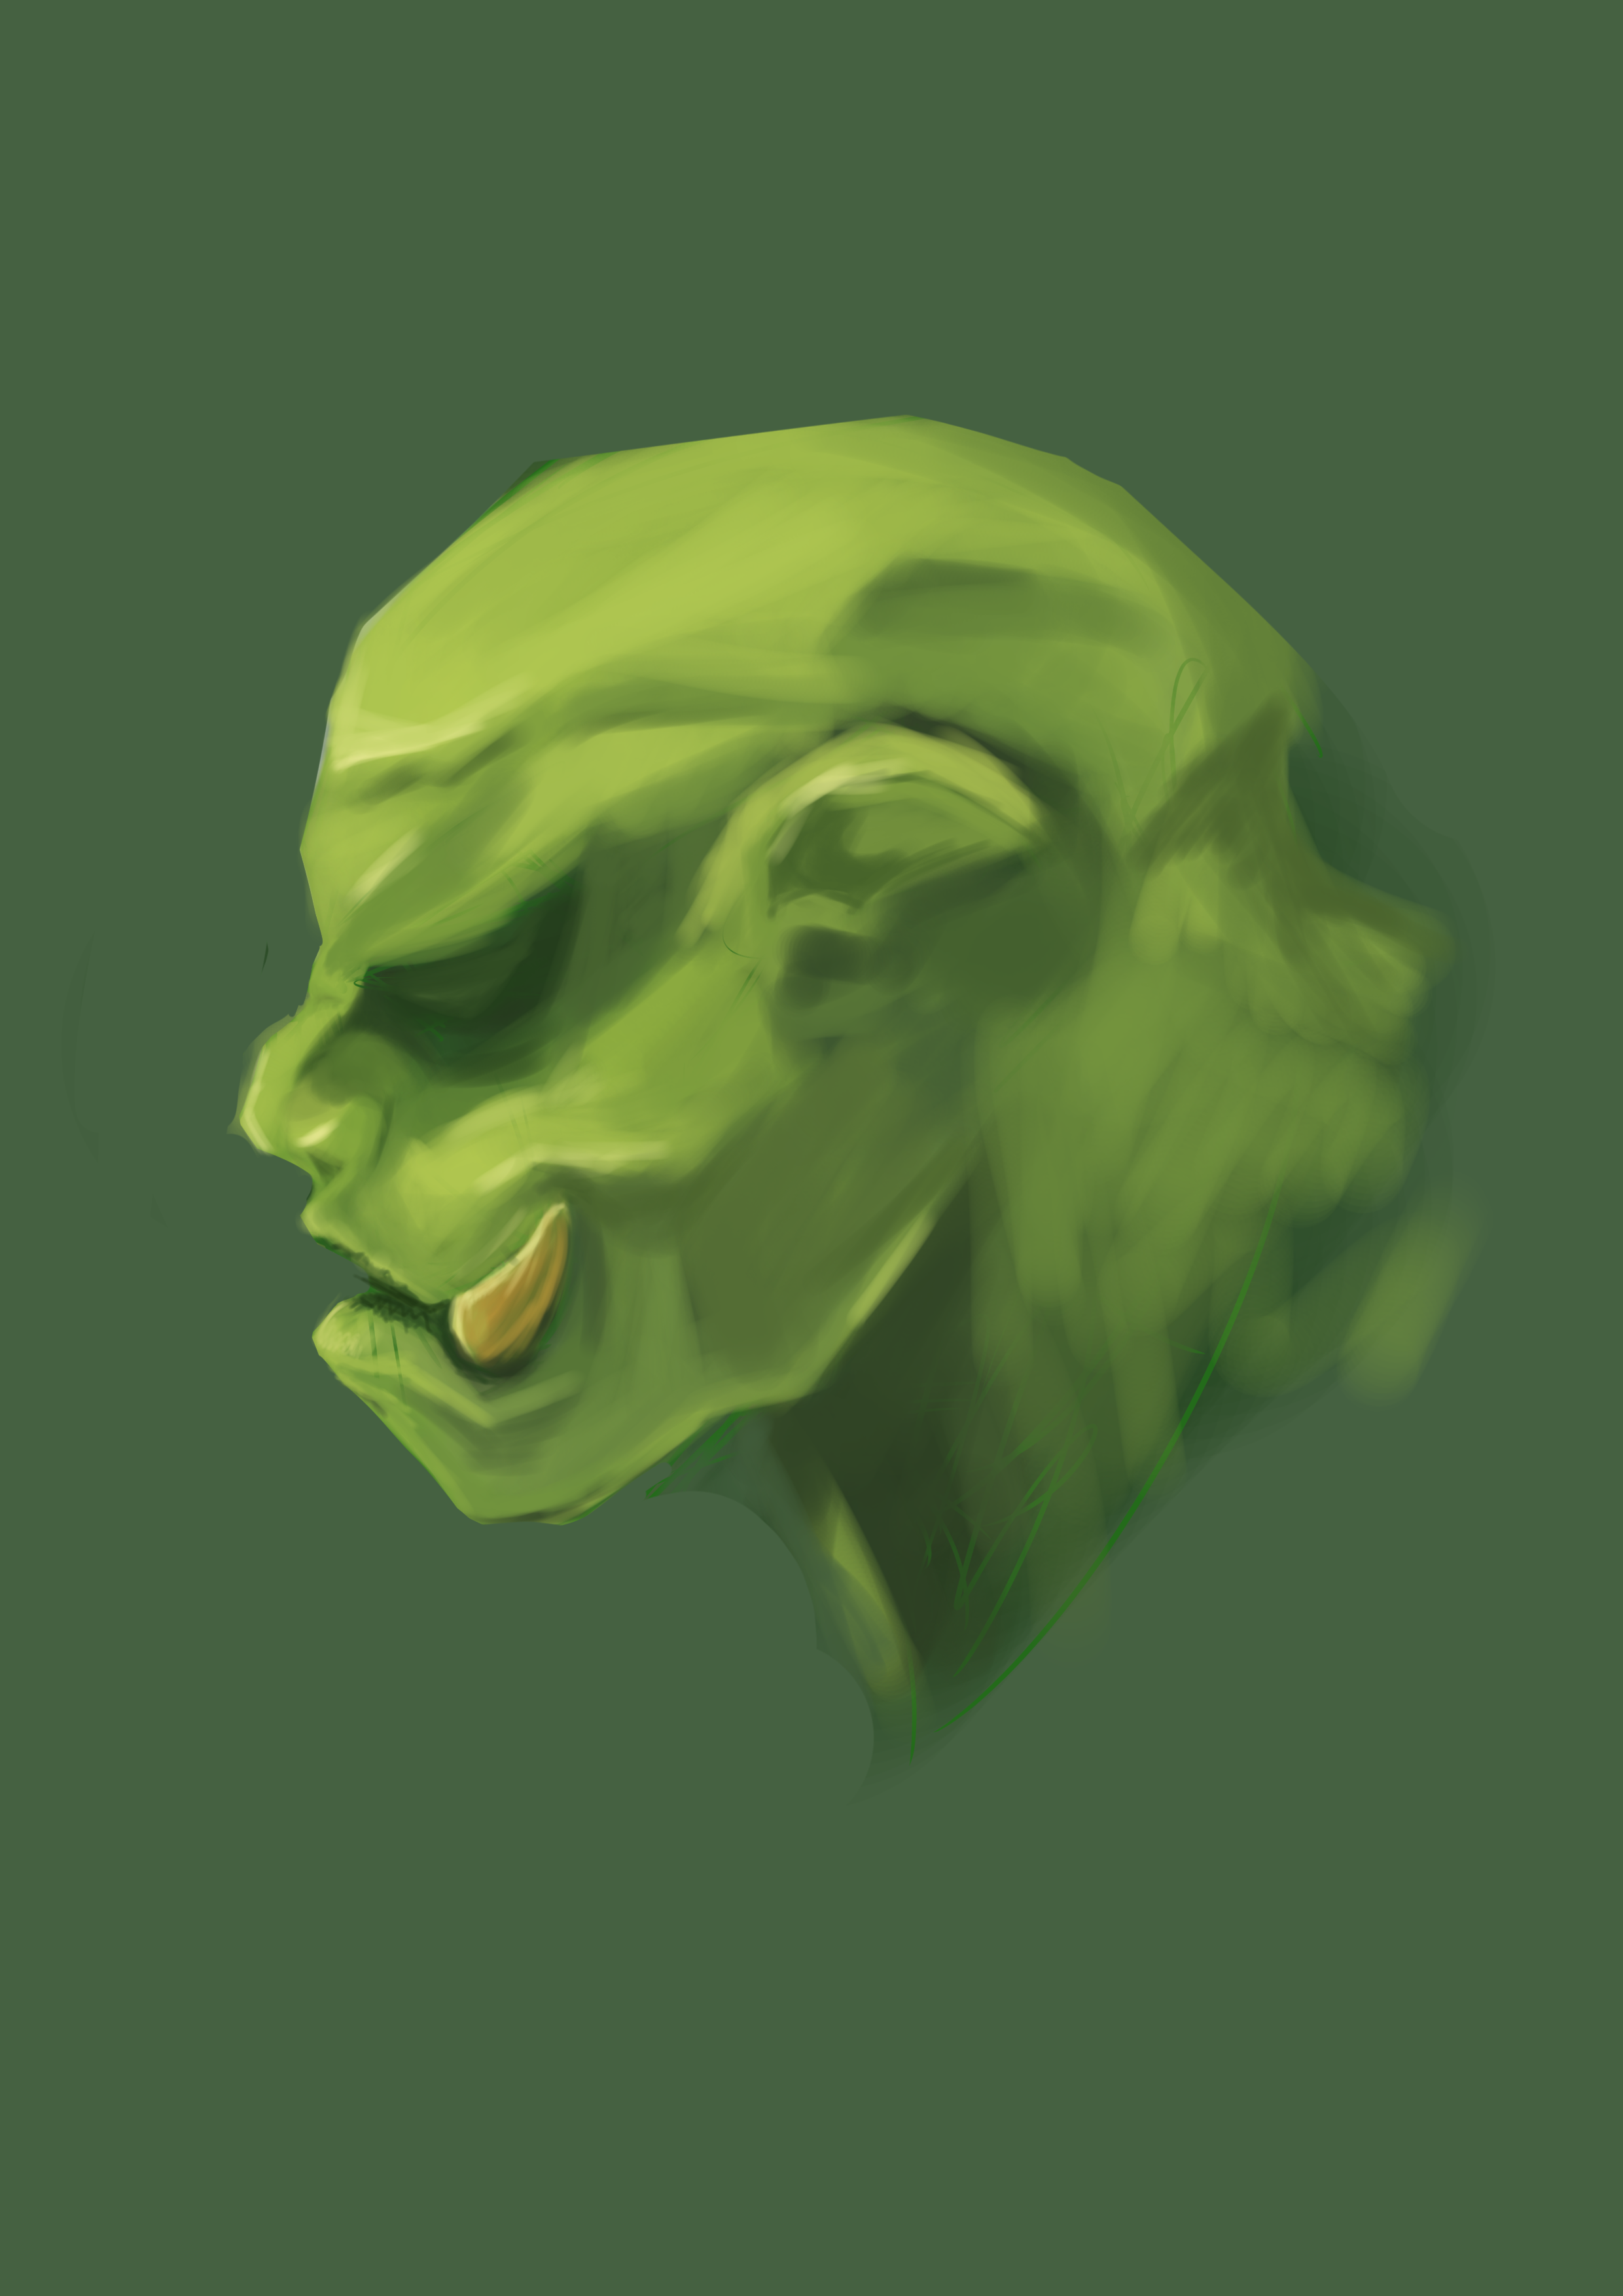 orc is life